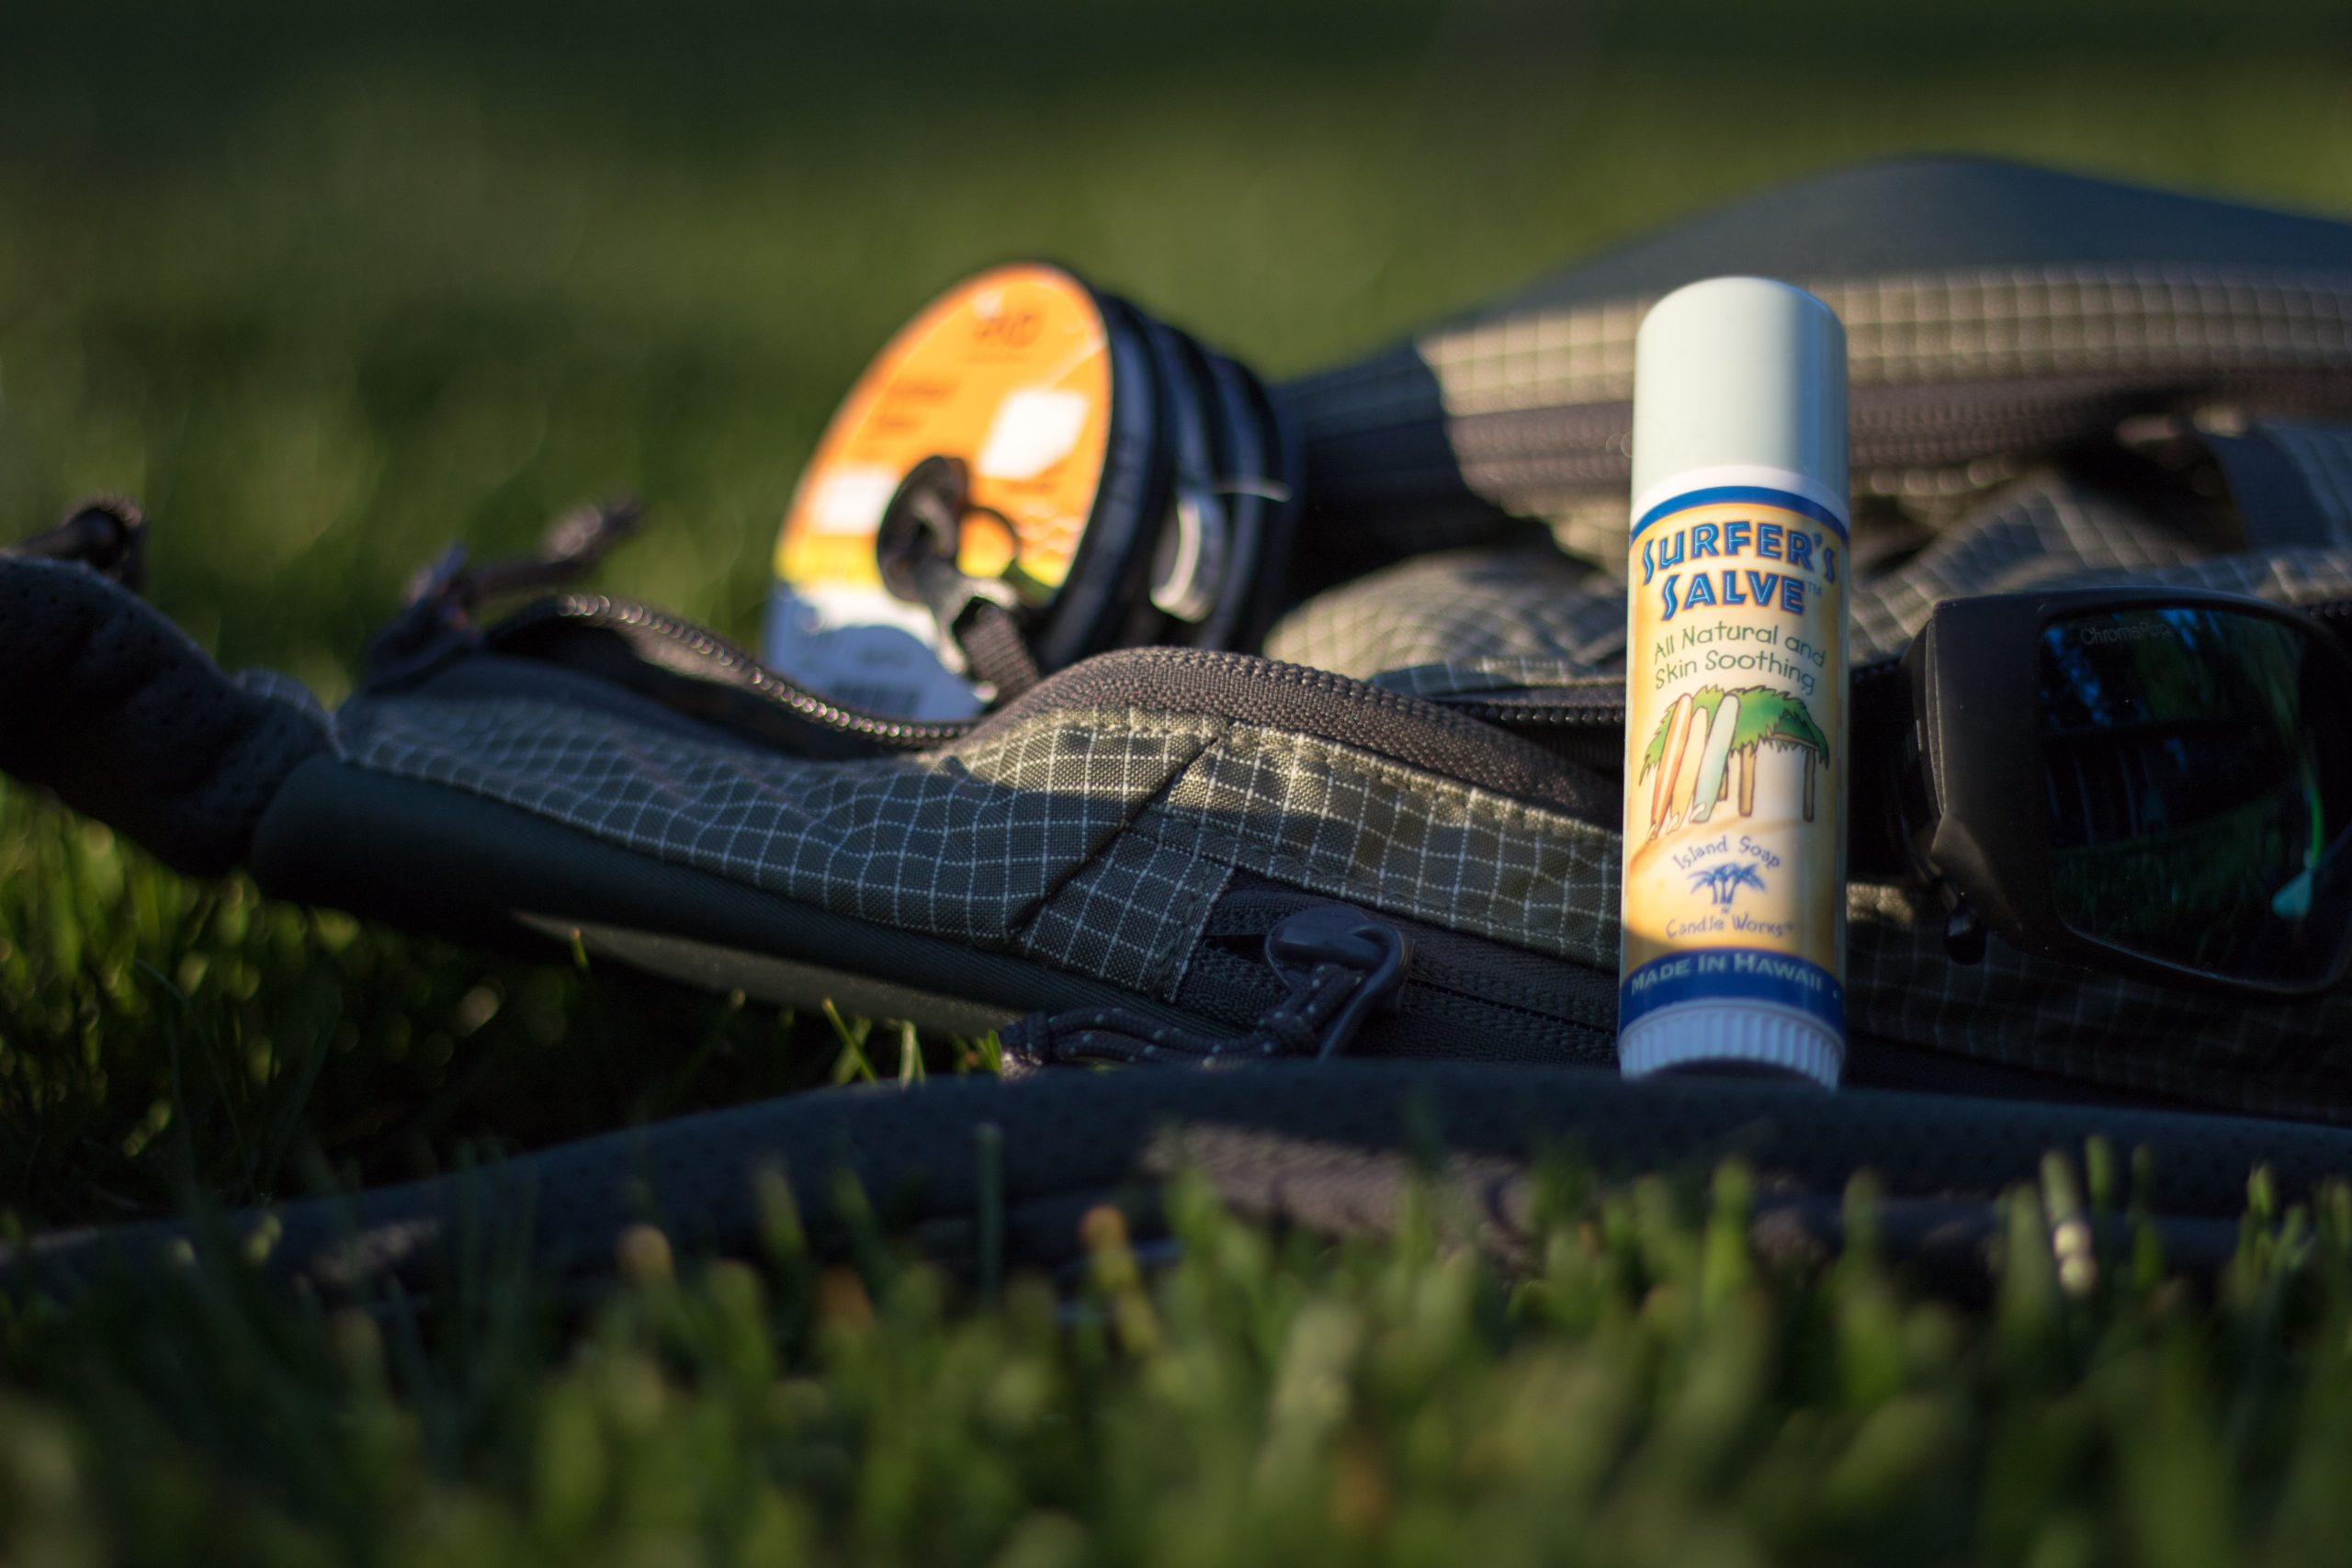 A stick of Surfer's Salve sitting against sunglasses and fly fishing gear